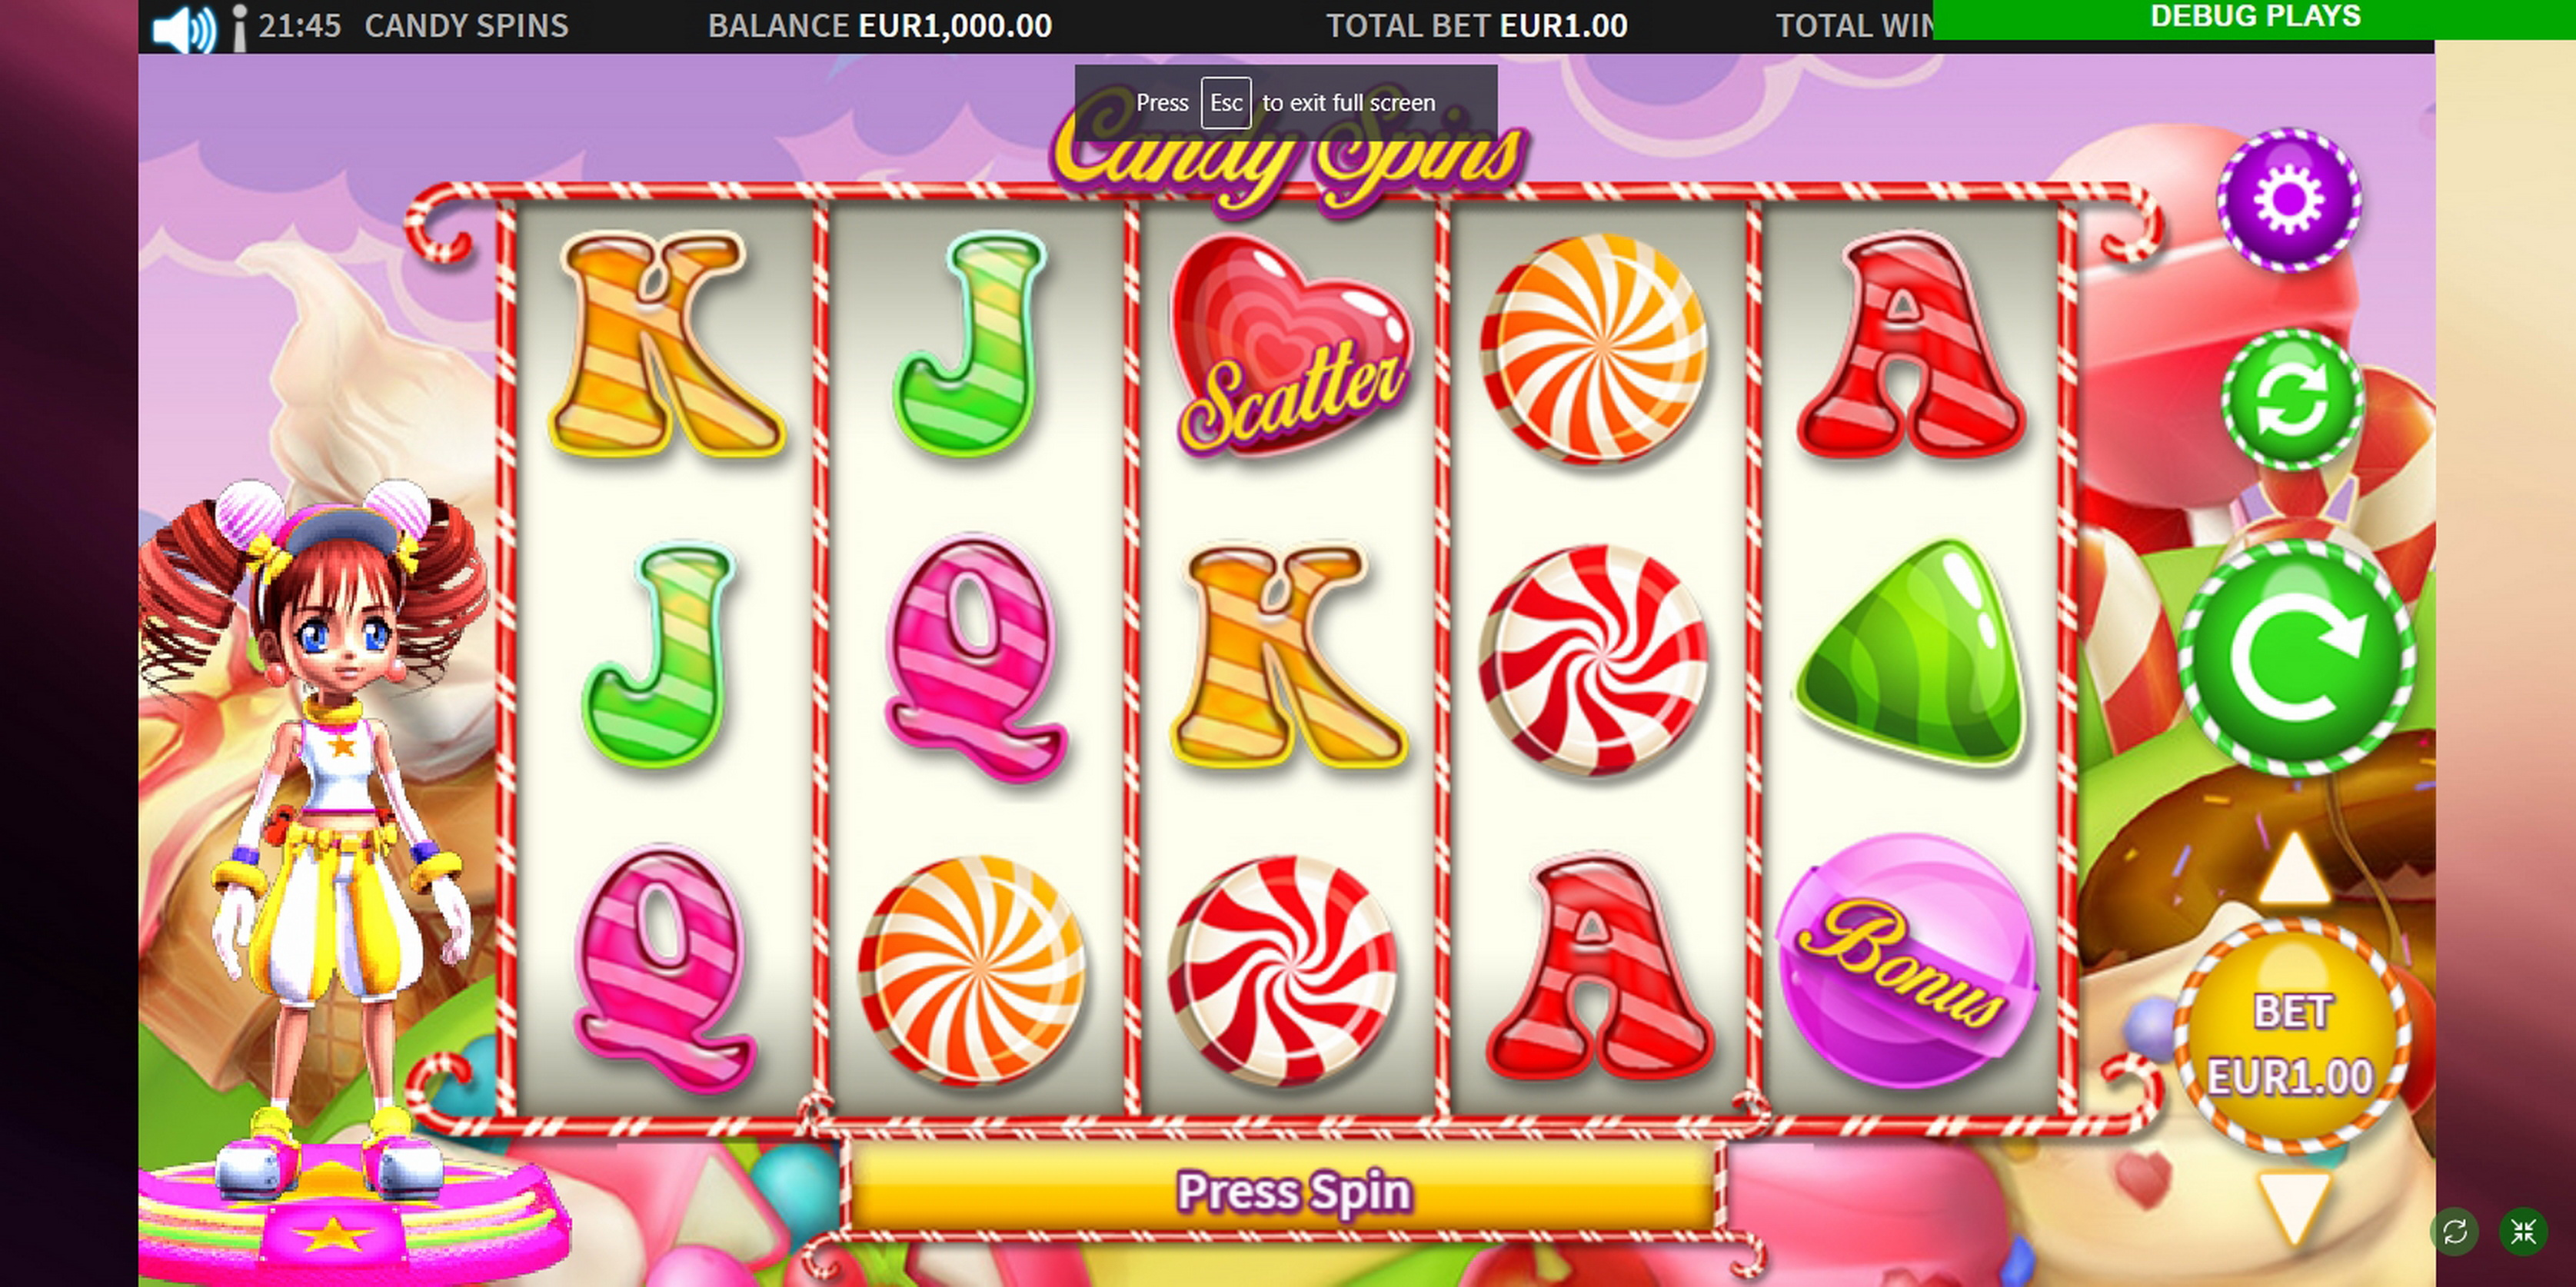 Reels in Candy Spins Slot Game by MetaGU